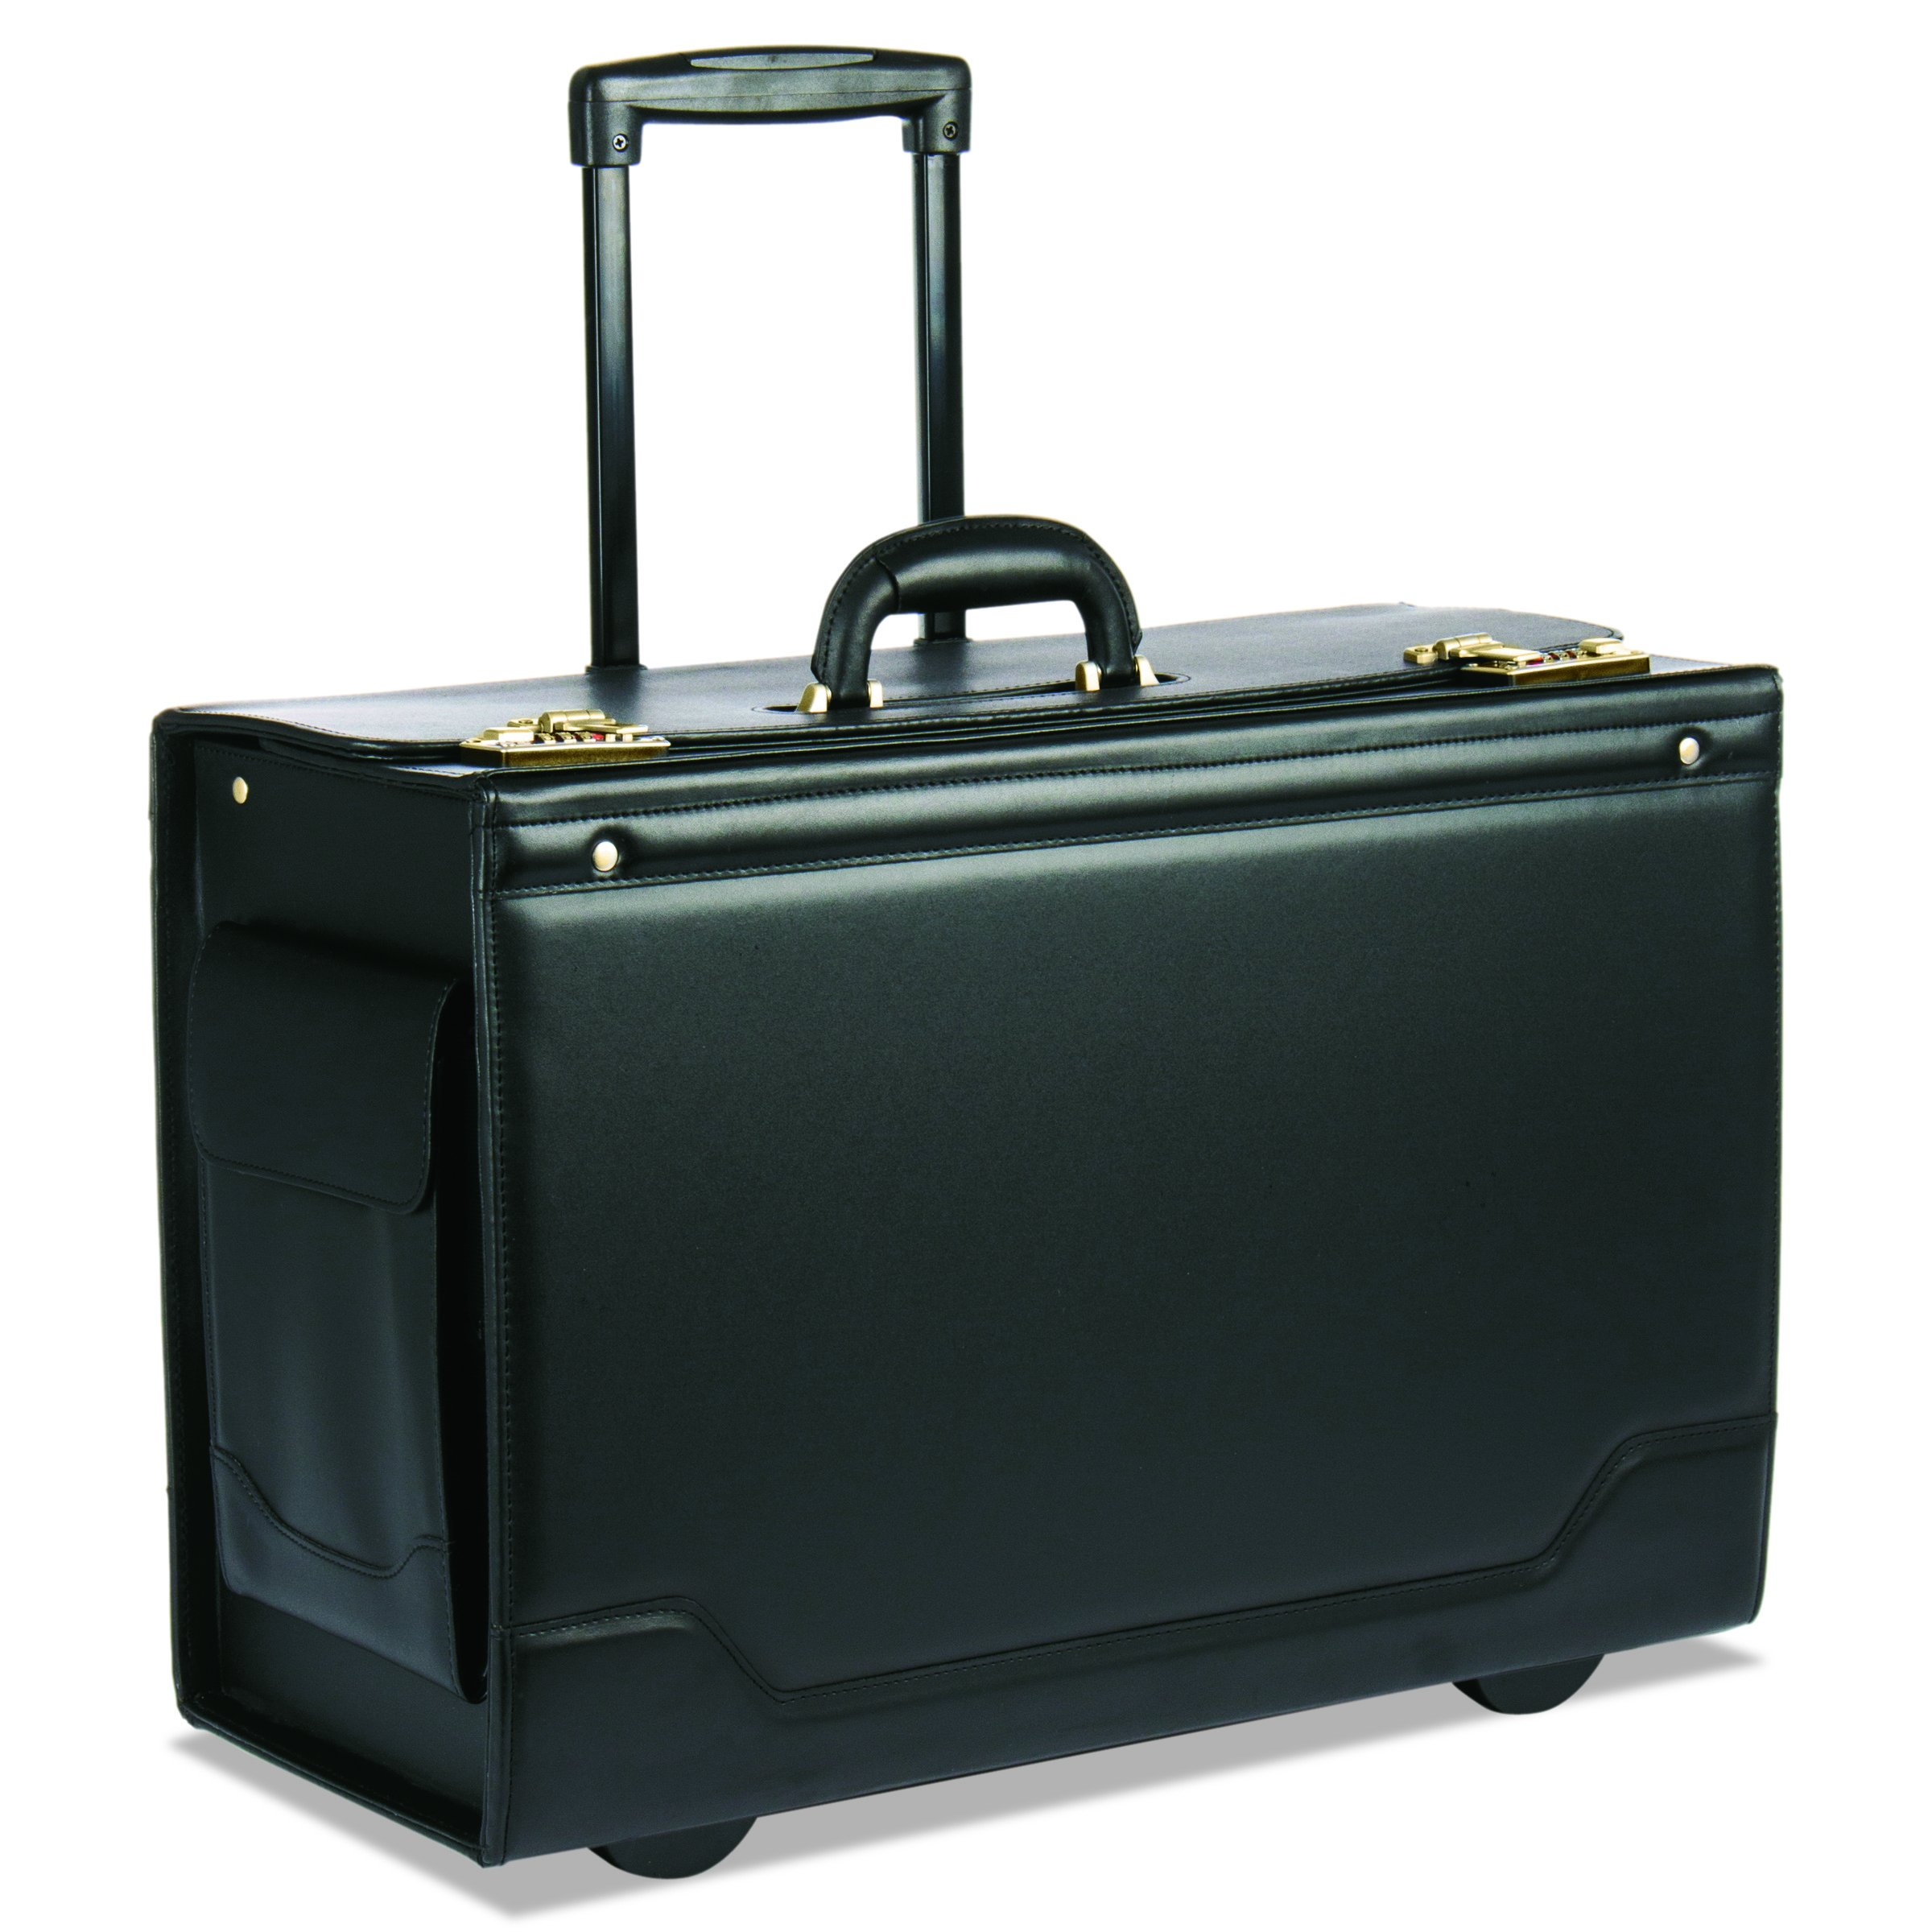 STEBCO 341626BLK Wheeled Catalog Case, Leather-Trimmed Tufide, 21-3/4 x 15-1/2 x 9-3/4 Inches, Black by Stebco